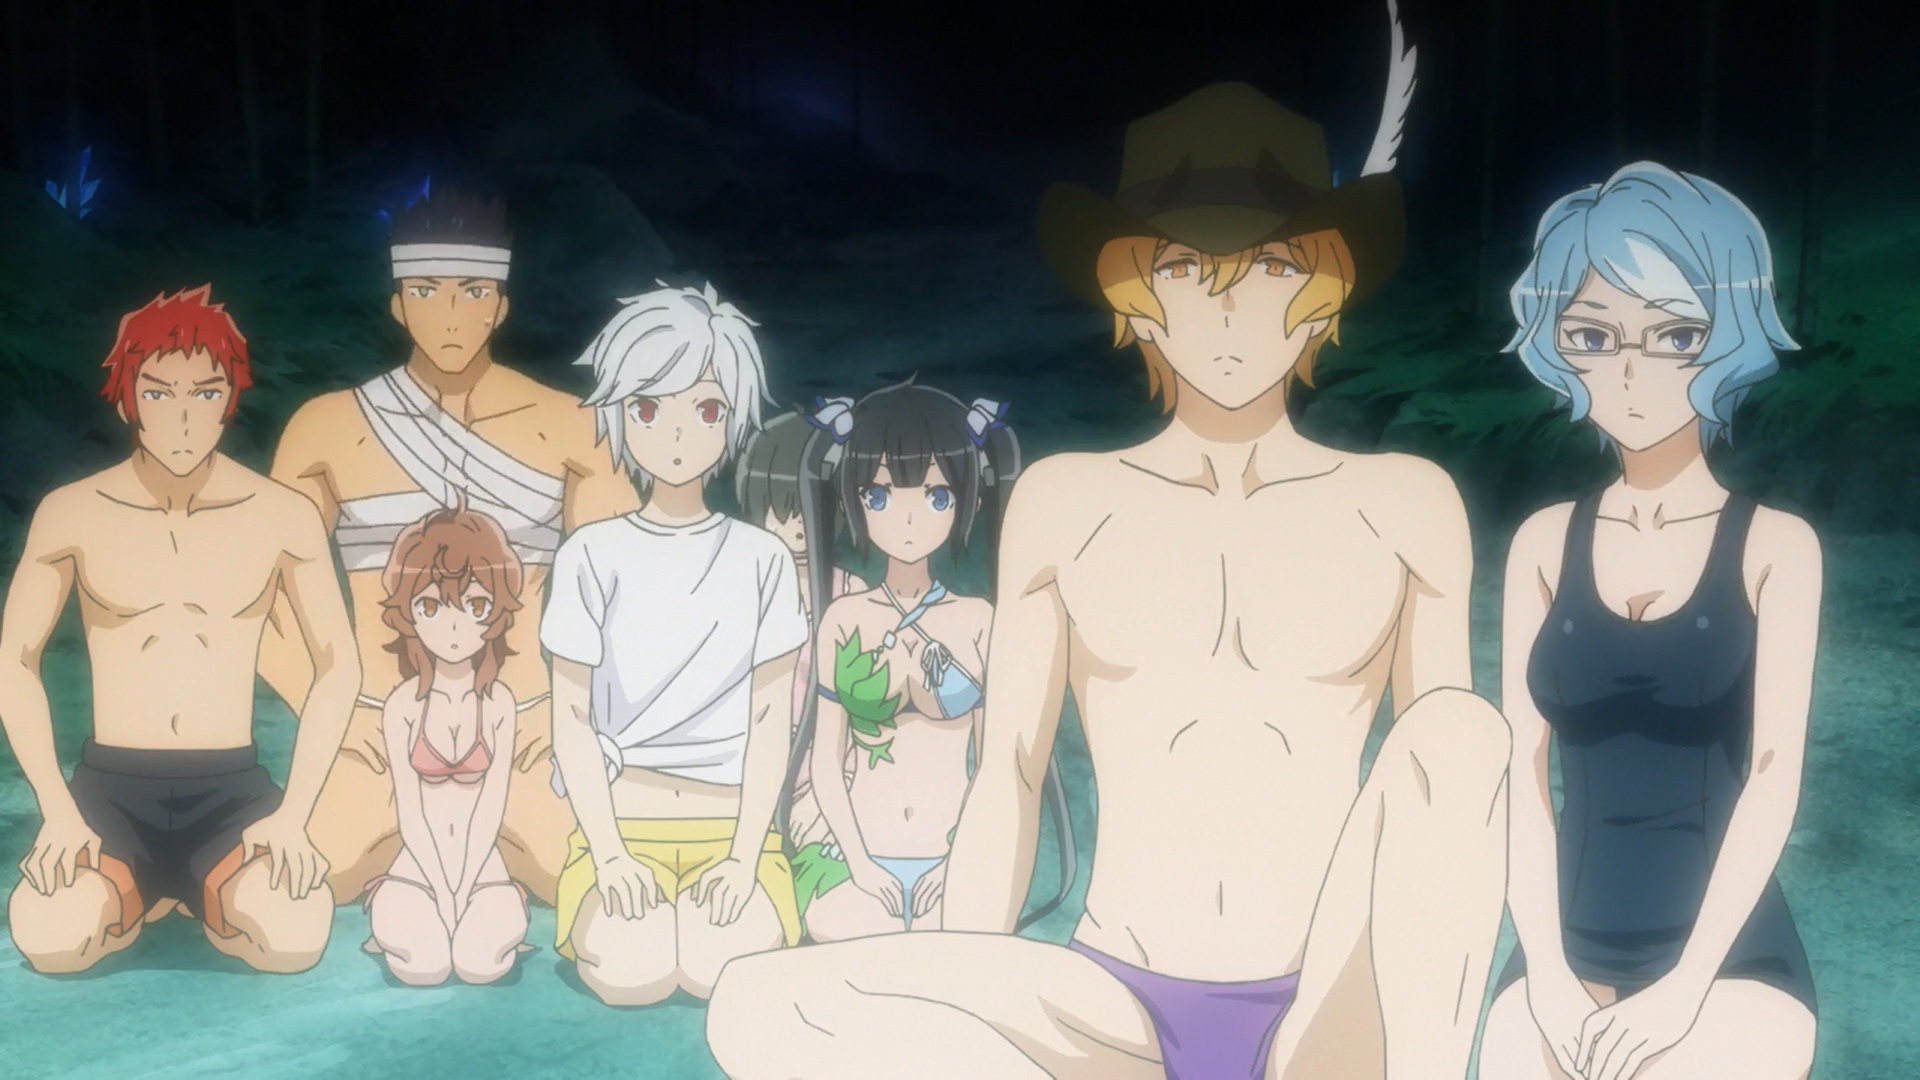 Is it Wrong to Expect a Hot Spring in a Dungeon?